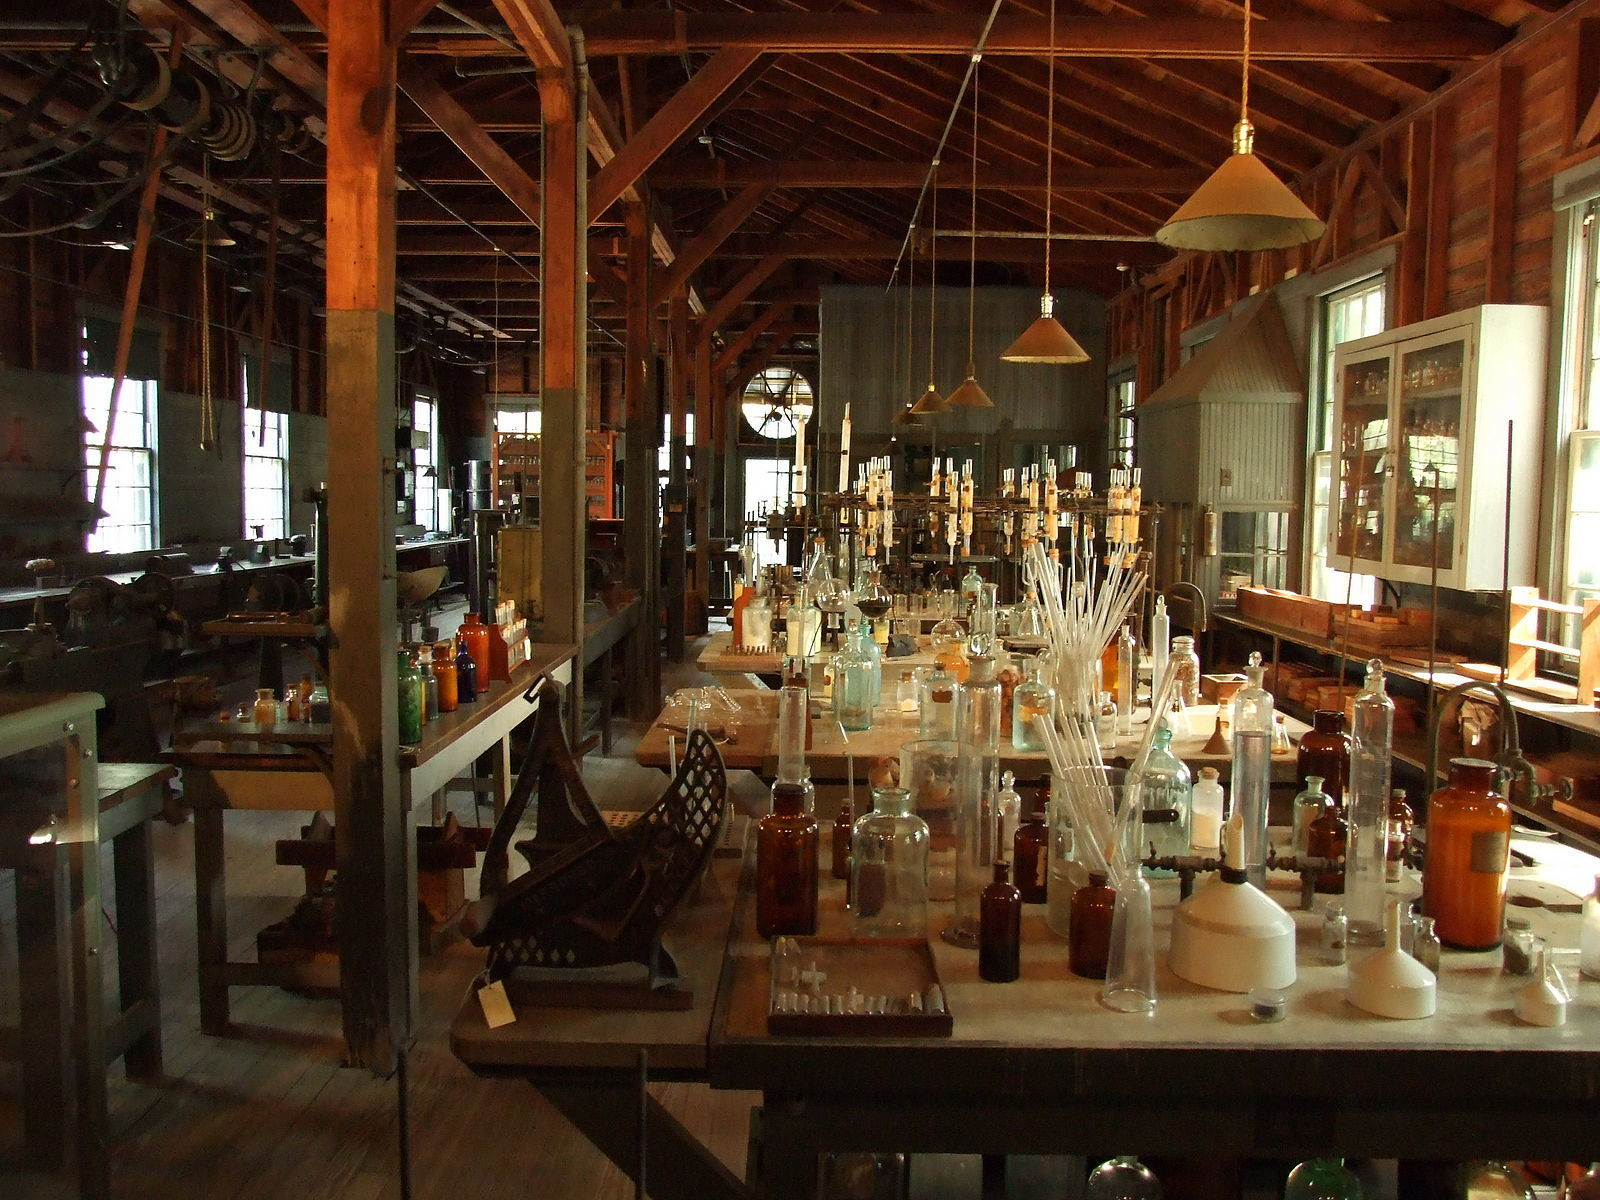 Thomas Edison Home and Laboratory